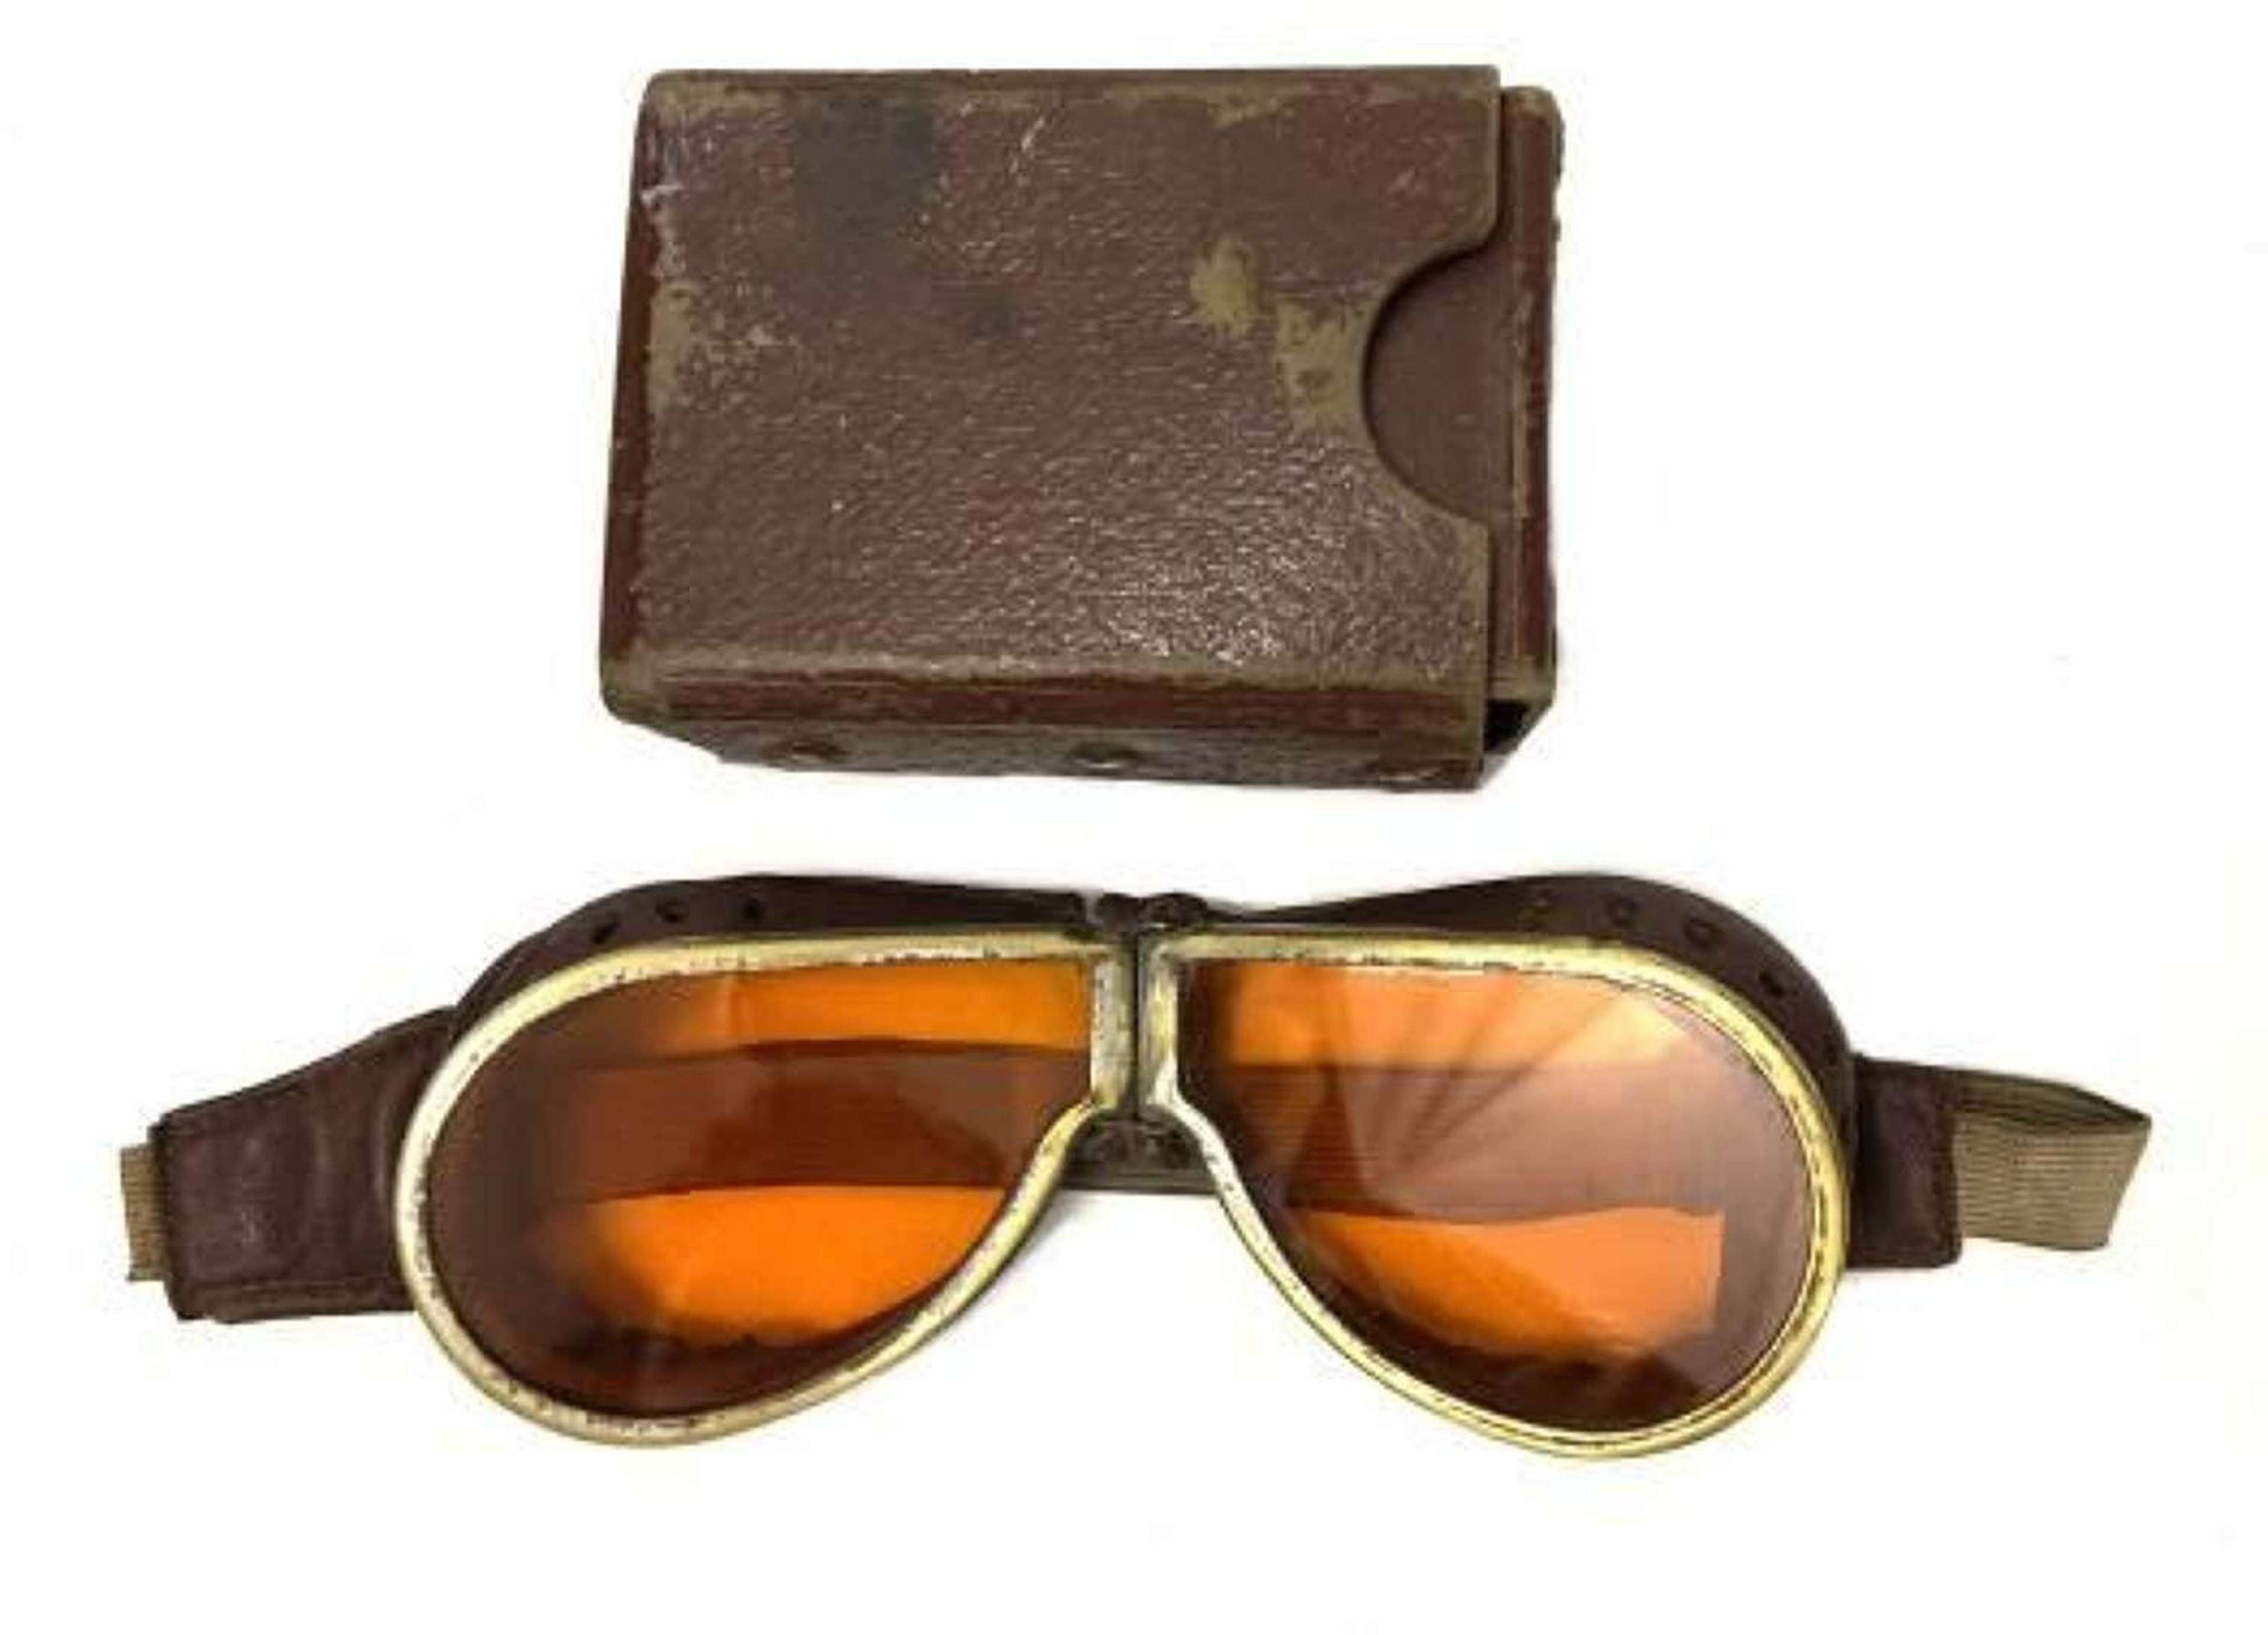 Original WW2 British Army MT Goggles and Case - Tinted Lenses